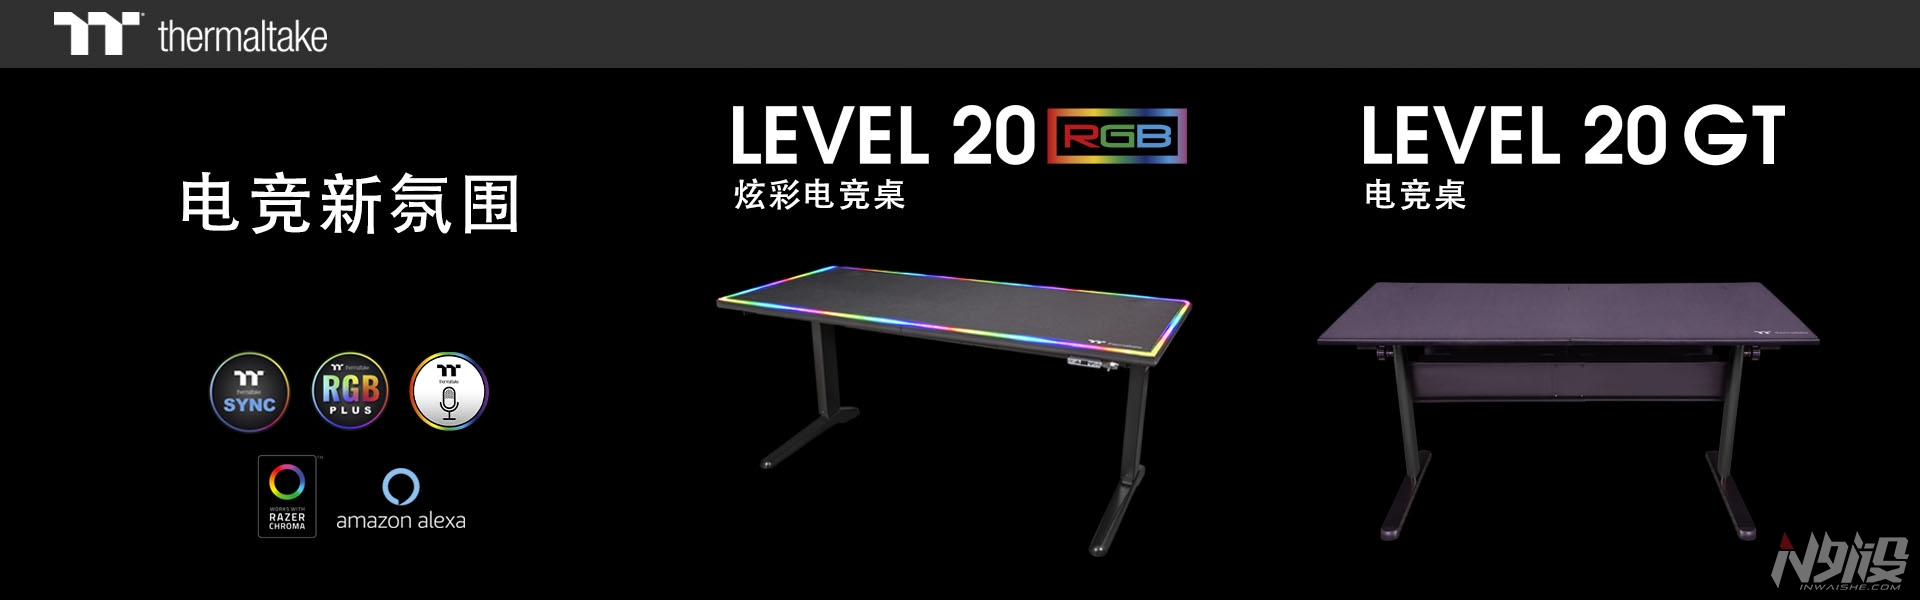 曜越发布Level 20 RGB和Level 20 GT BattleStation电竞桌